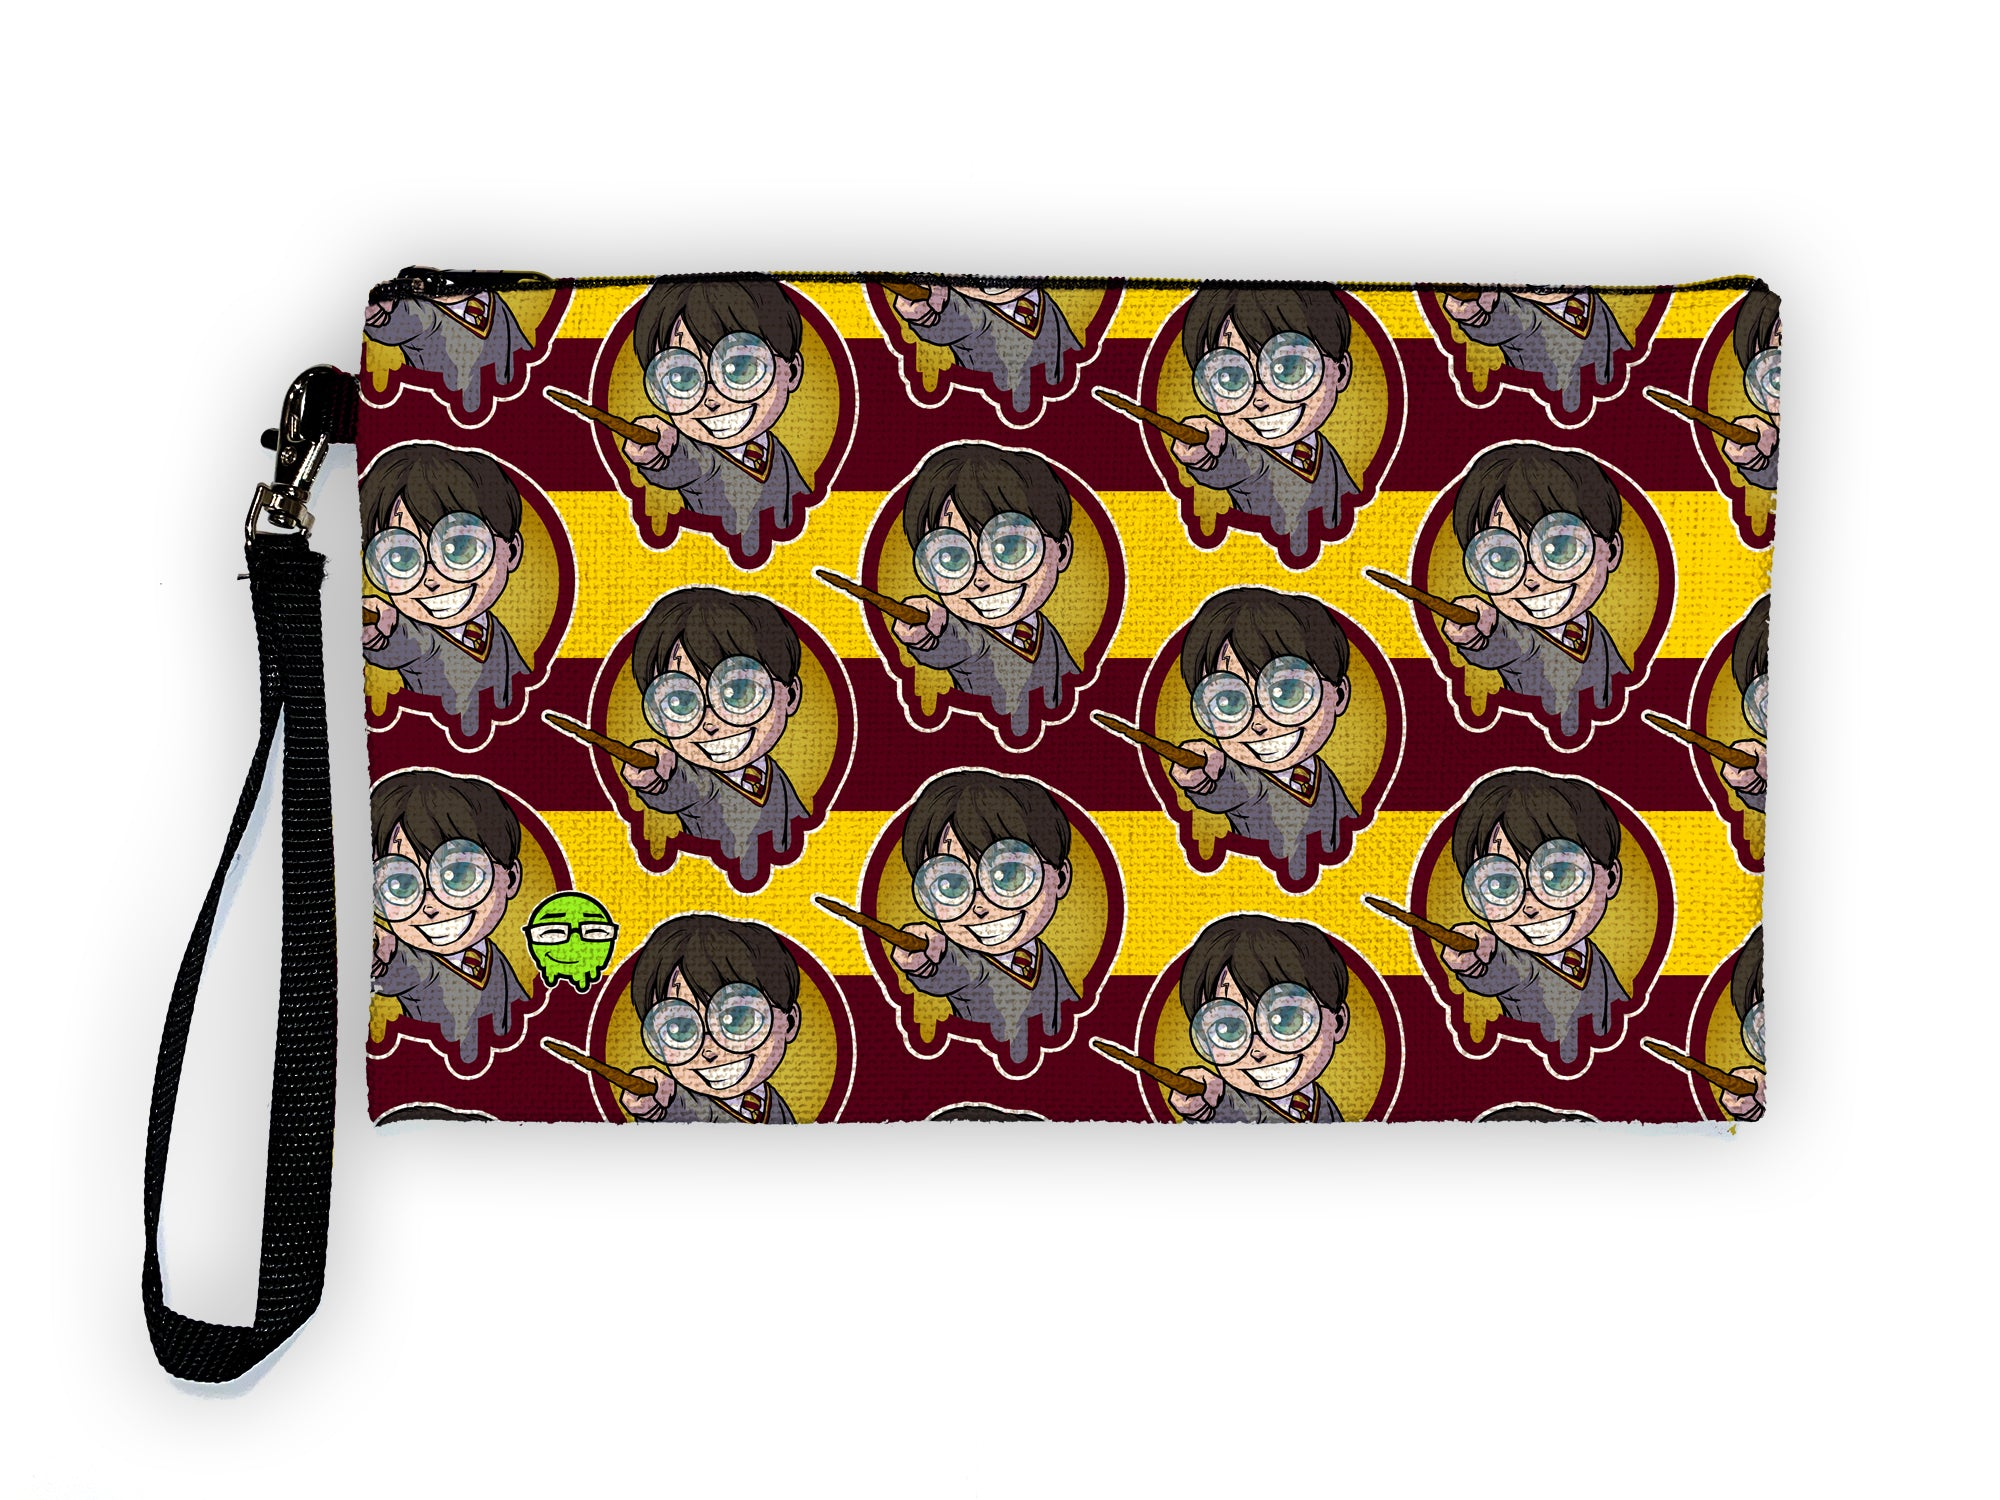 Harry Potter Pattern - Meents Illustrated Authentic Large Pencil/Device Bag